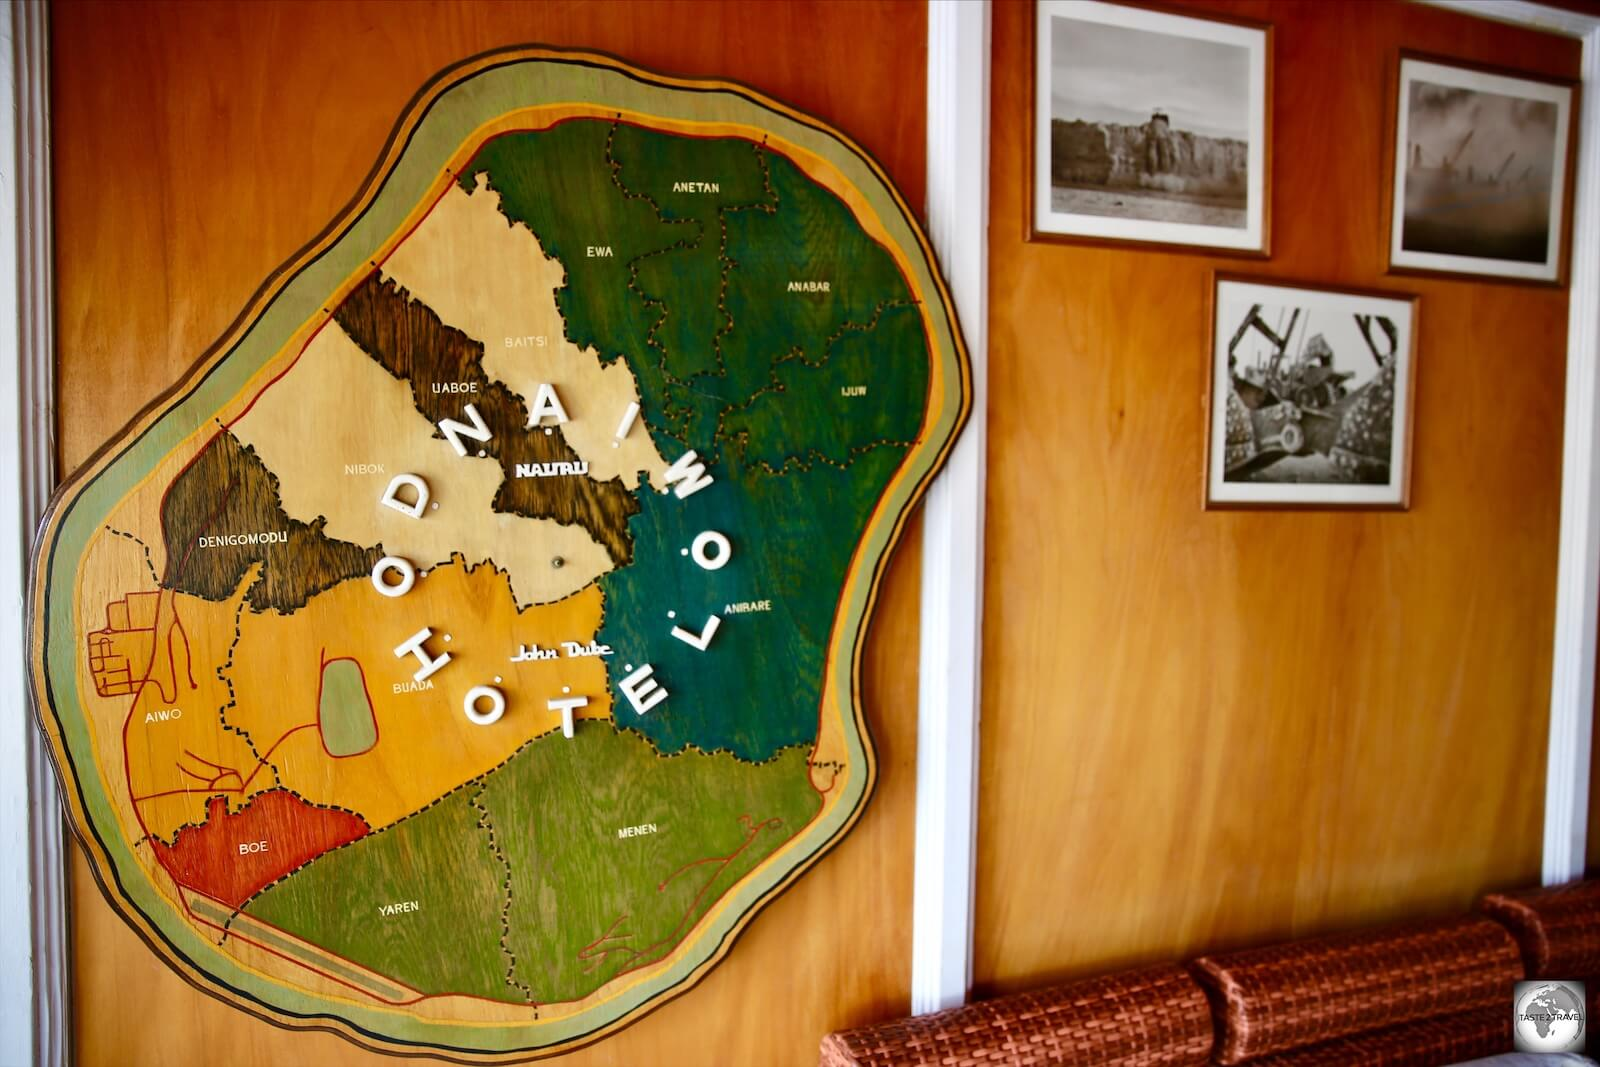 A wooden map of Nauru, showing the different districts, adorns the wall of the OD-N-Aiwo Hotel.